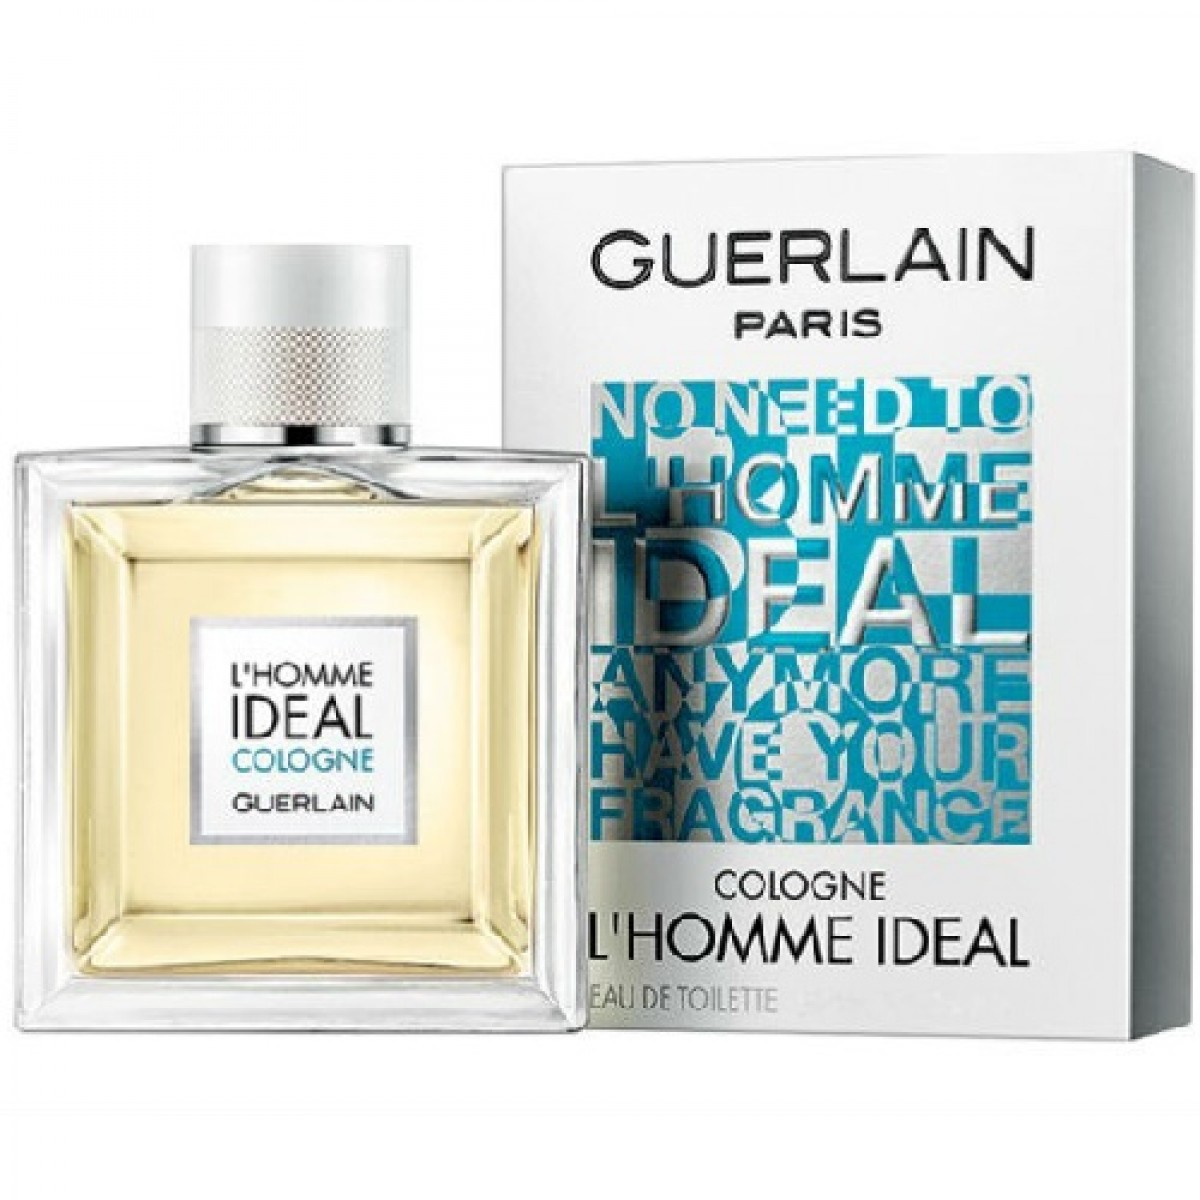 3. luxury perfumes on sale - L'Homme Ideal Cologne For Men by Guerlain 50ml